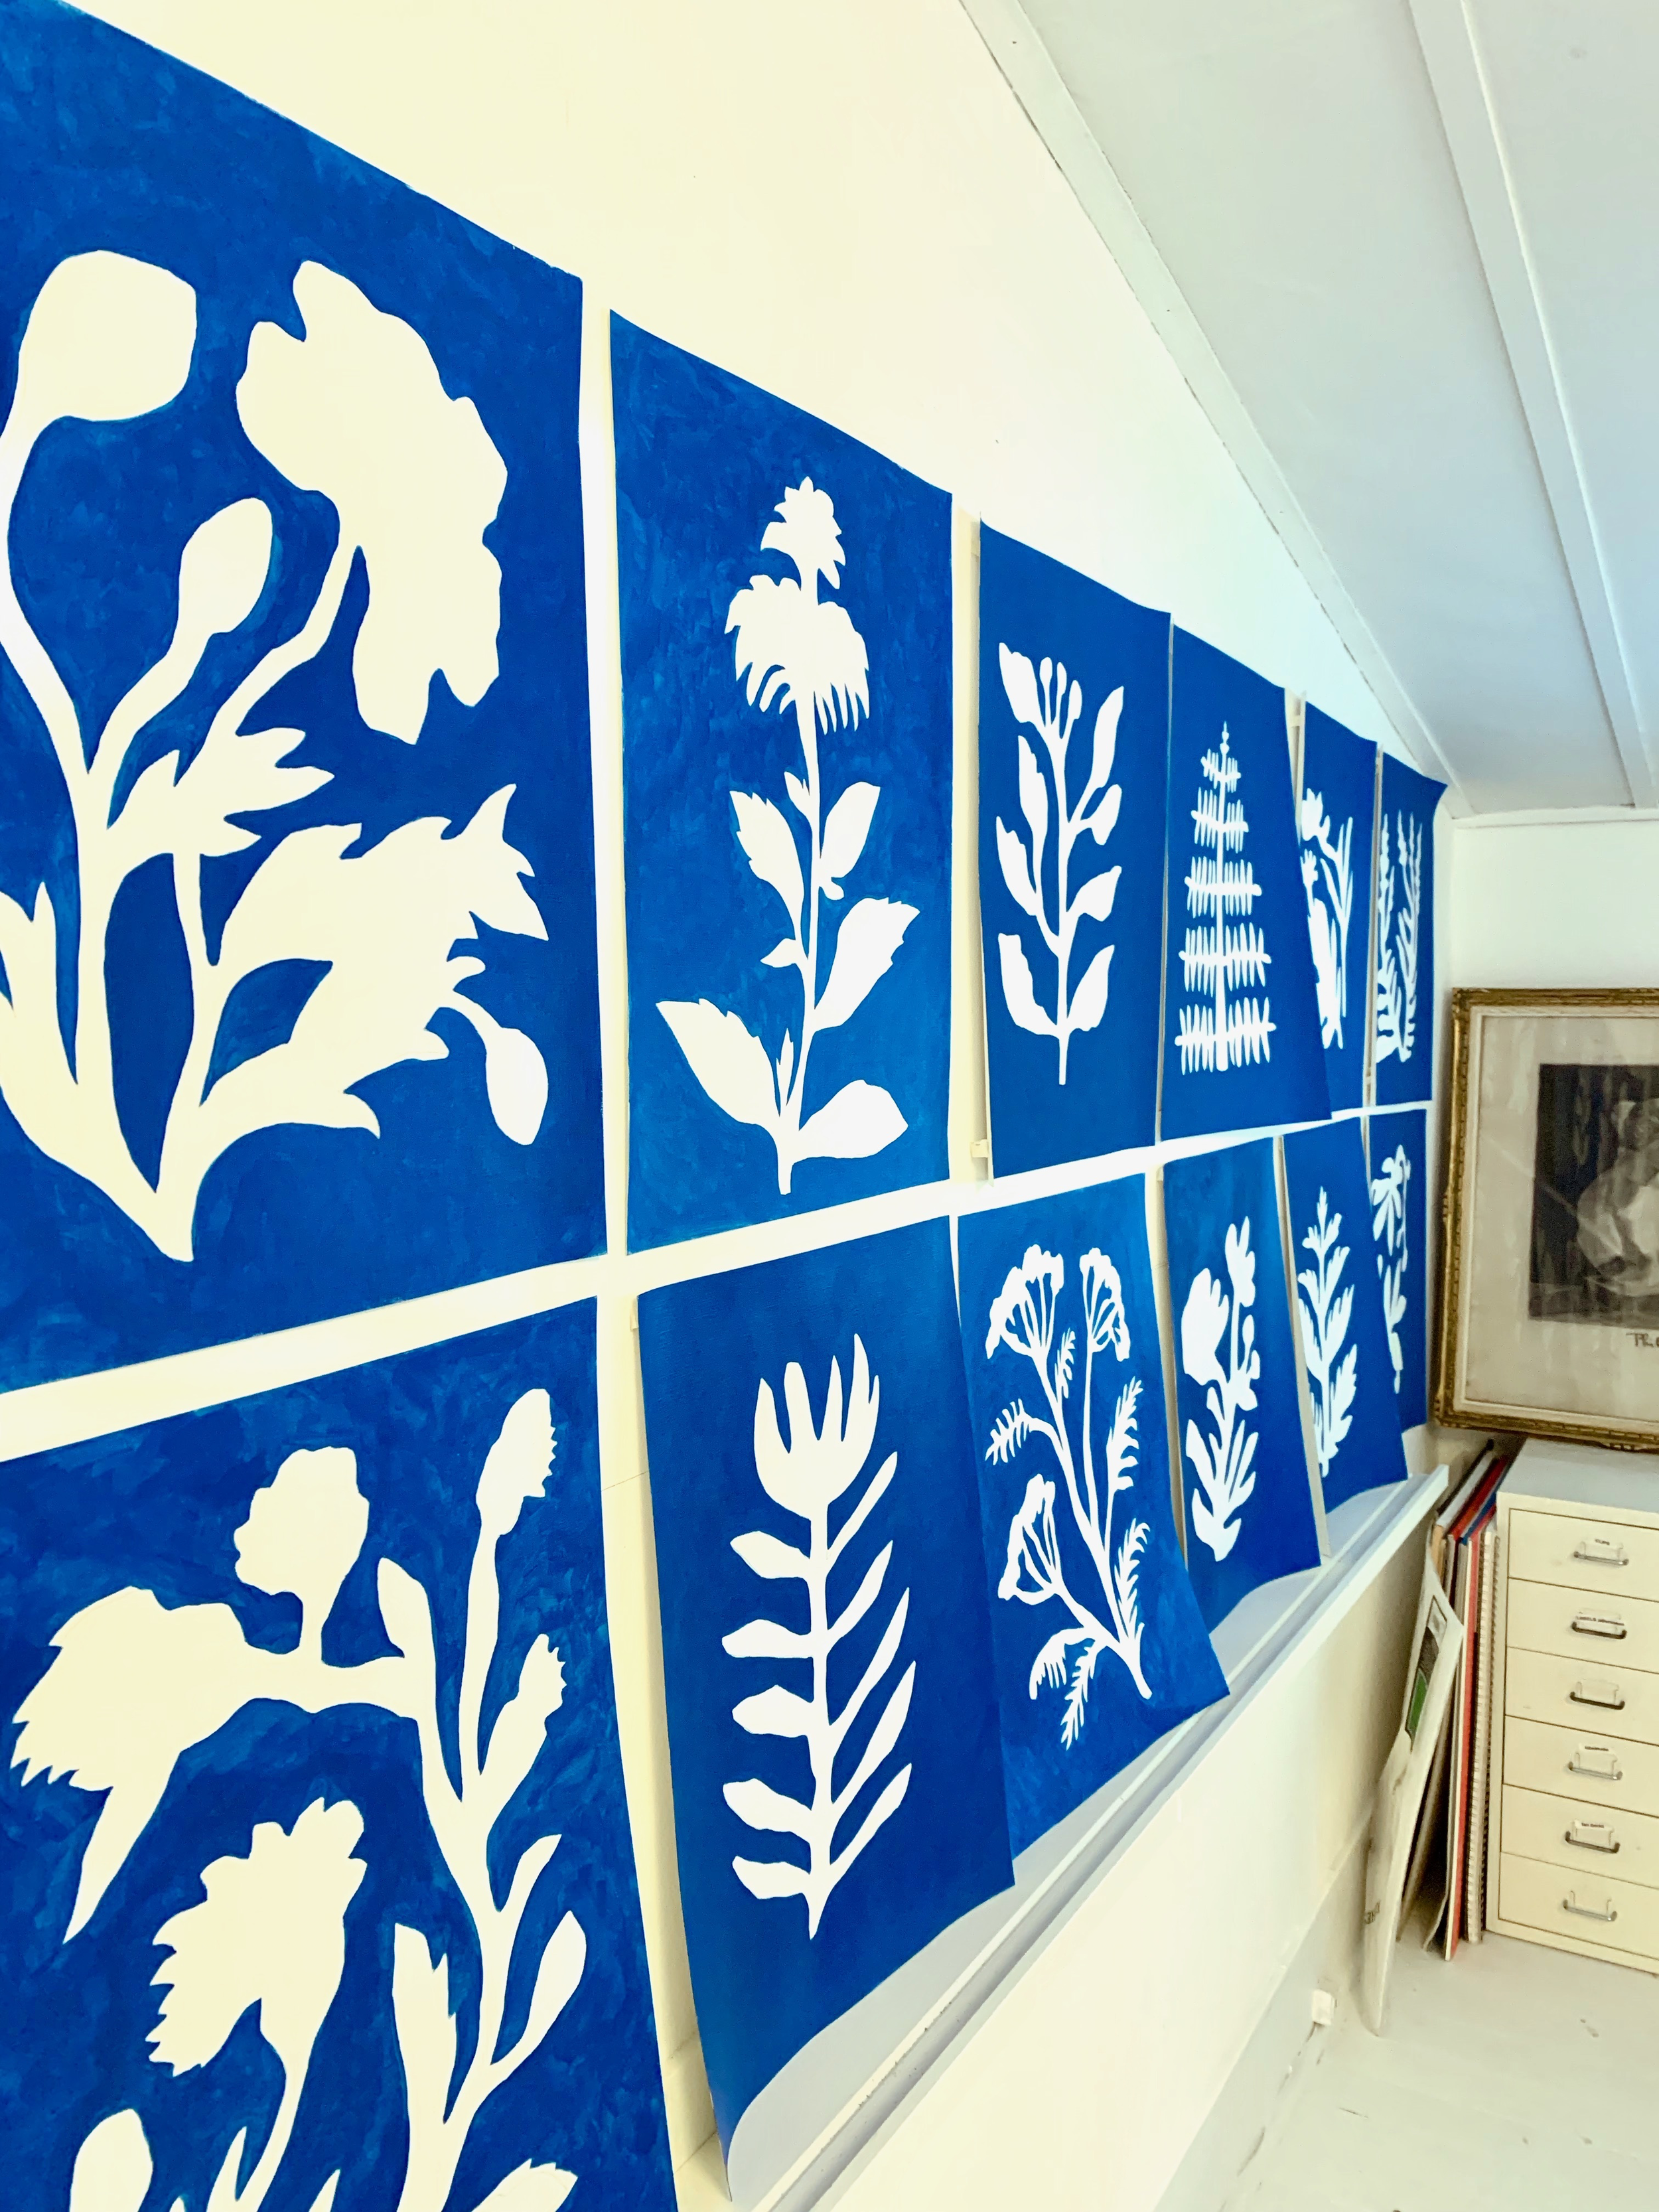 The original collection of 12 Sunprint paintings, inspired by cyanotype photography, tacked up on my studio wall.